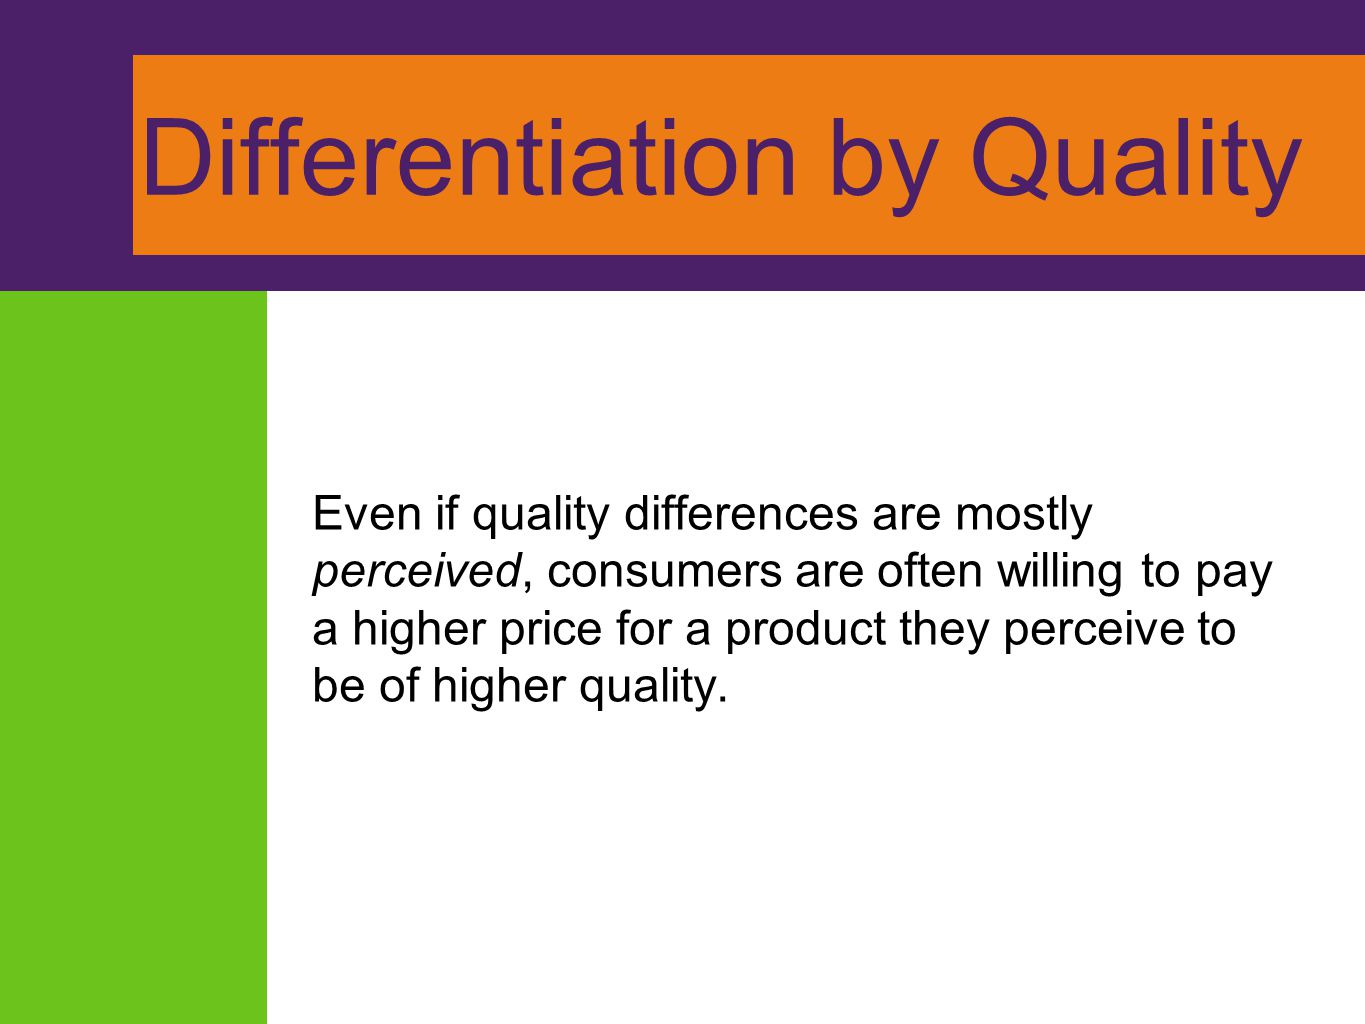 Differentiation by Quality